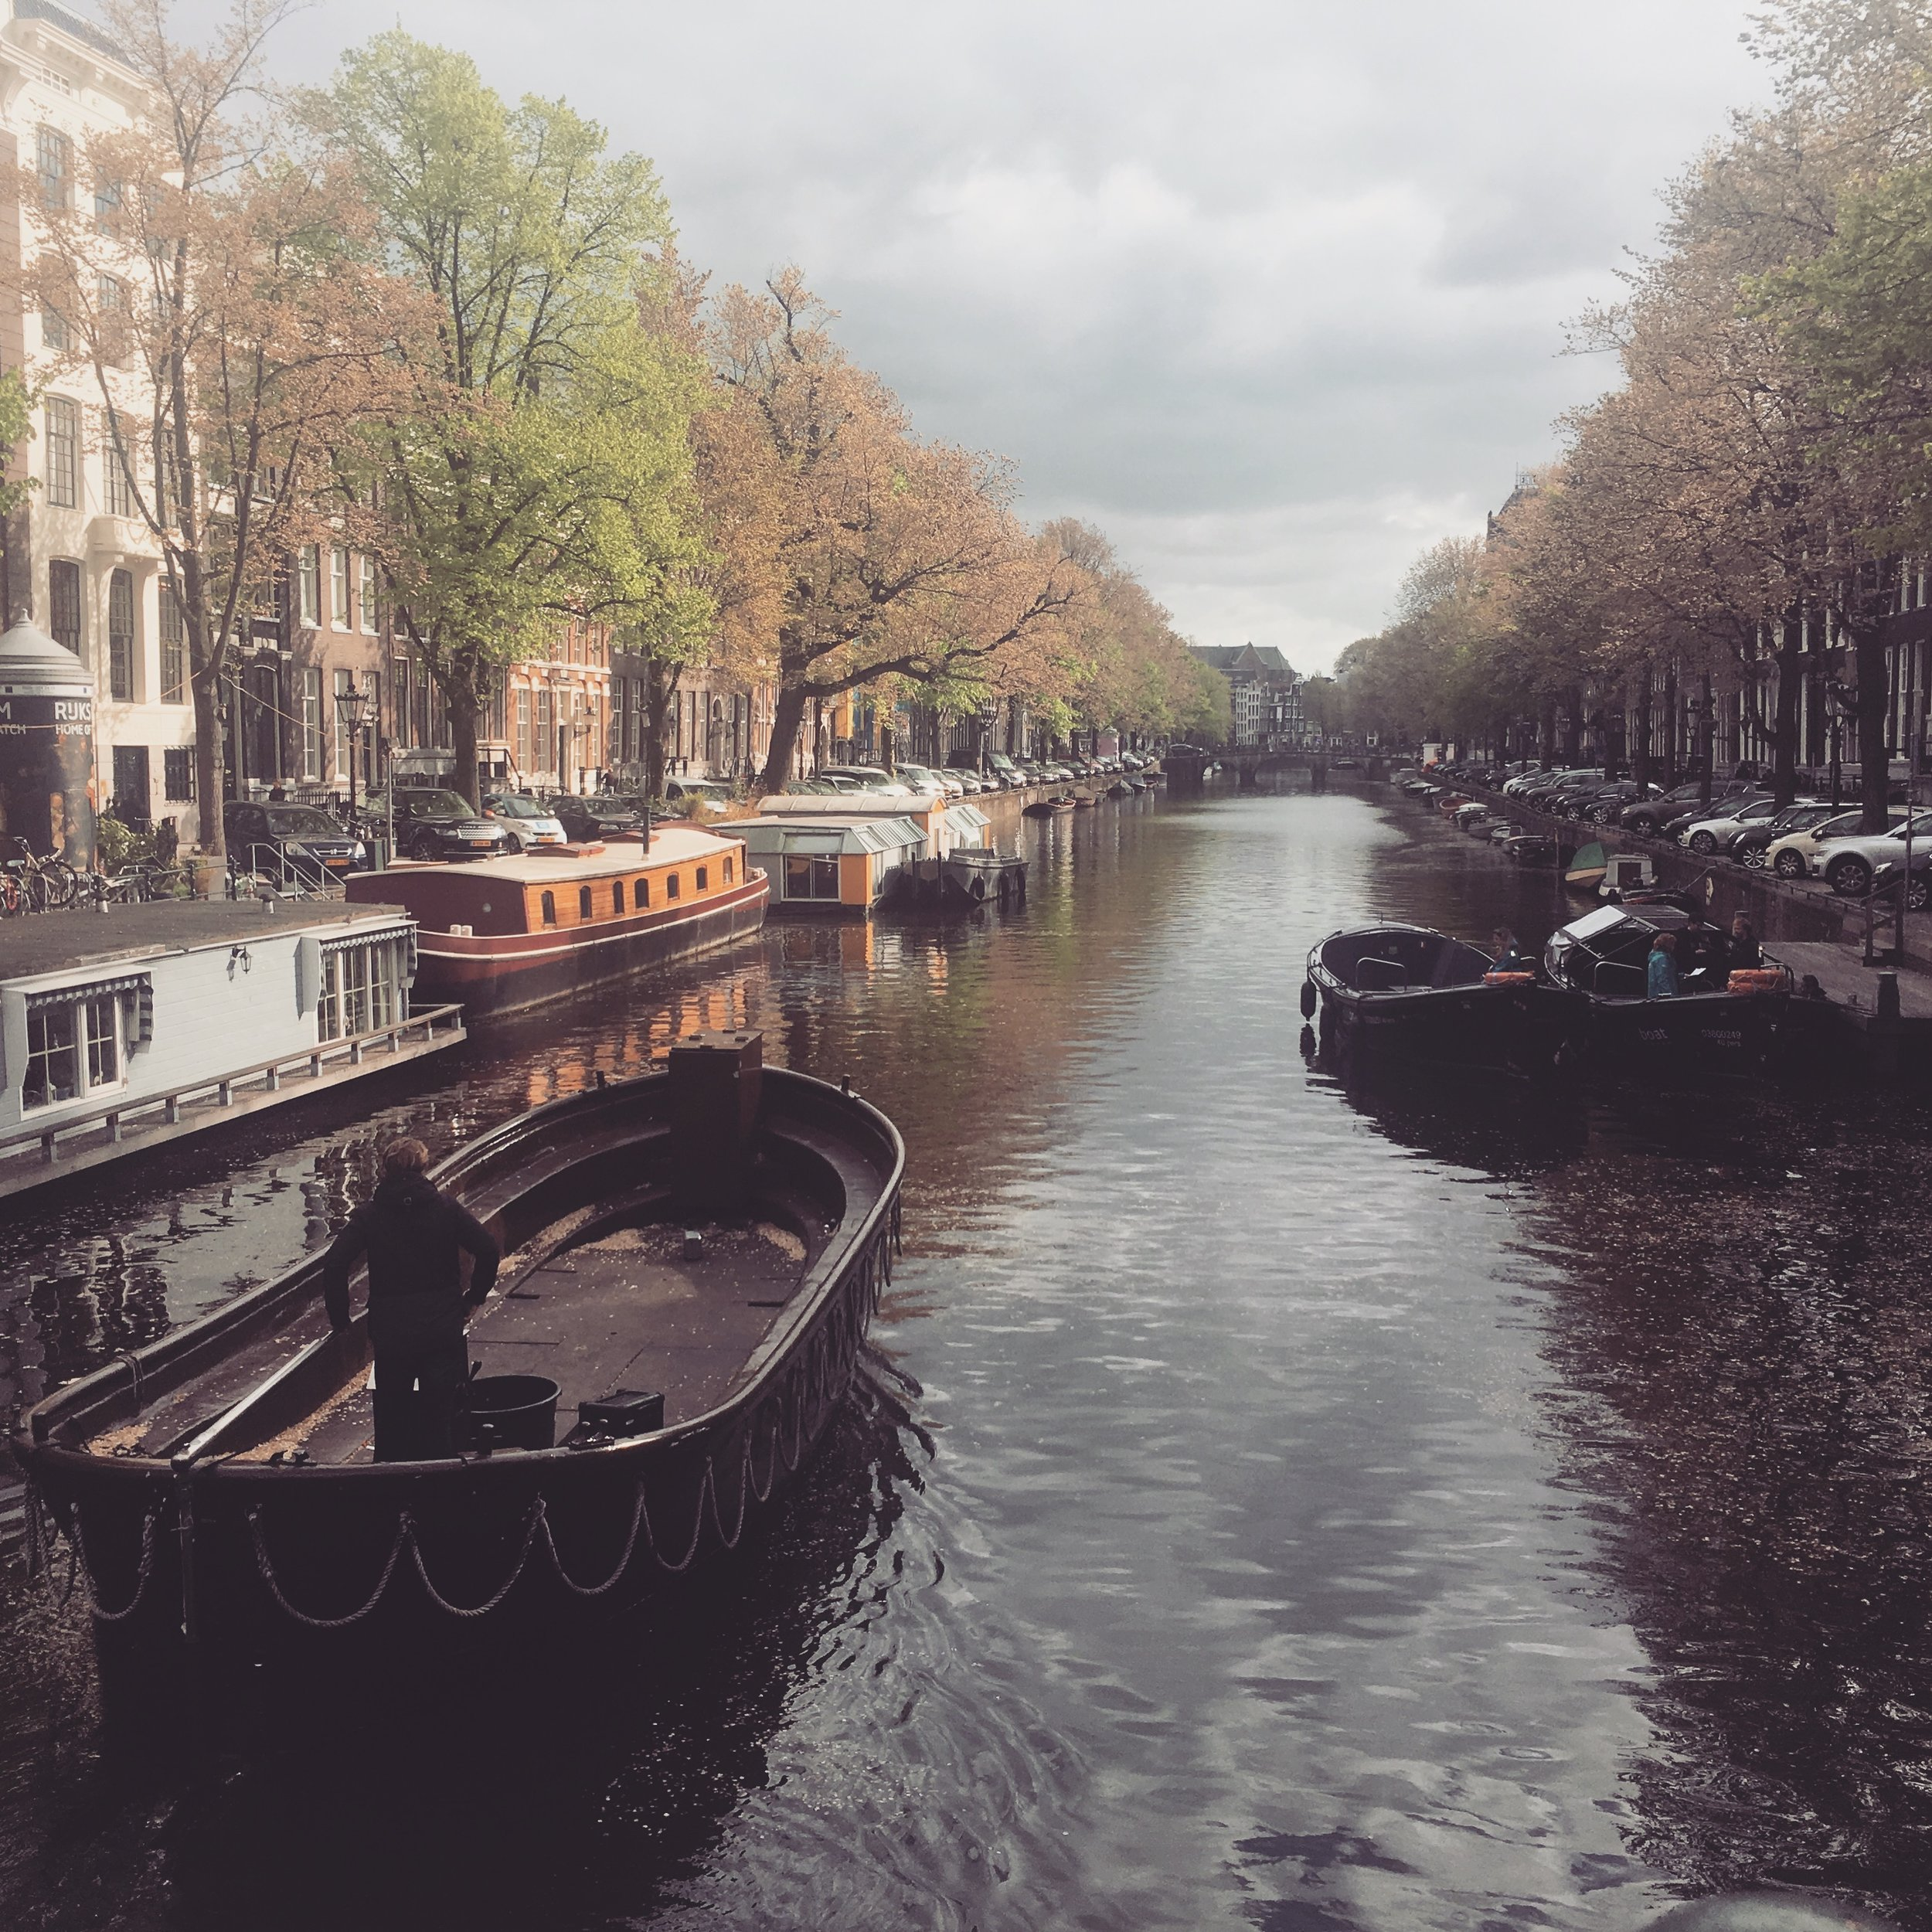 """History Comes Alive on Emperor's Canal - Texas Lifestyle Magazine October 3, 2017Nicknamed """"Venice of the North,"""" the history of Amsterdam is intimately connected to its 60 miles of canals flowing through the city. The Dutch first dug canals in the Middle Ages as a defense system, but as the city expanded the defense moats...READ MORE"""